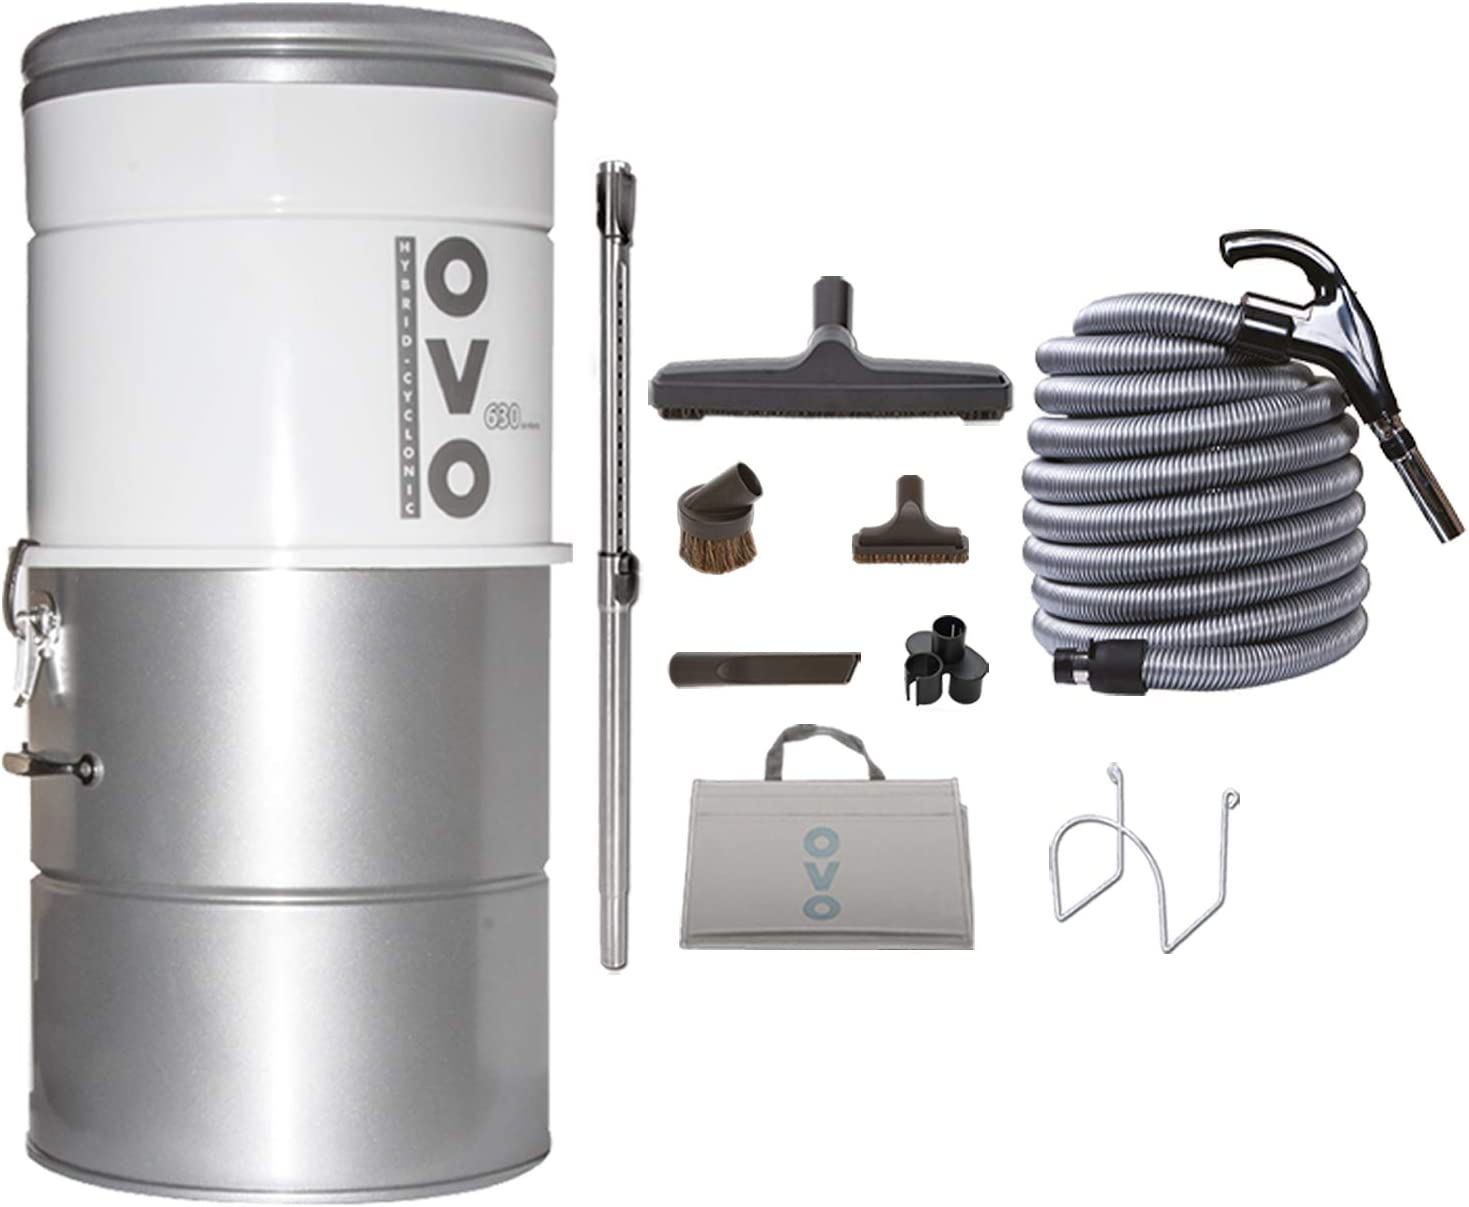 OVO PAK63D-40 Large and Powerful Central Vacuum System, Hybrid Filtration (with or Without Disposable Bags), 25L or 6.6 Gal, 630 Air watts with 40 ft Deluxe Accessory Kit Included, 40ft, Sliver